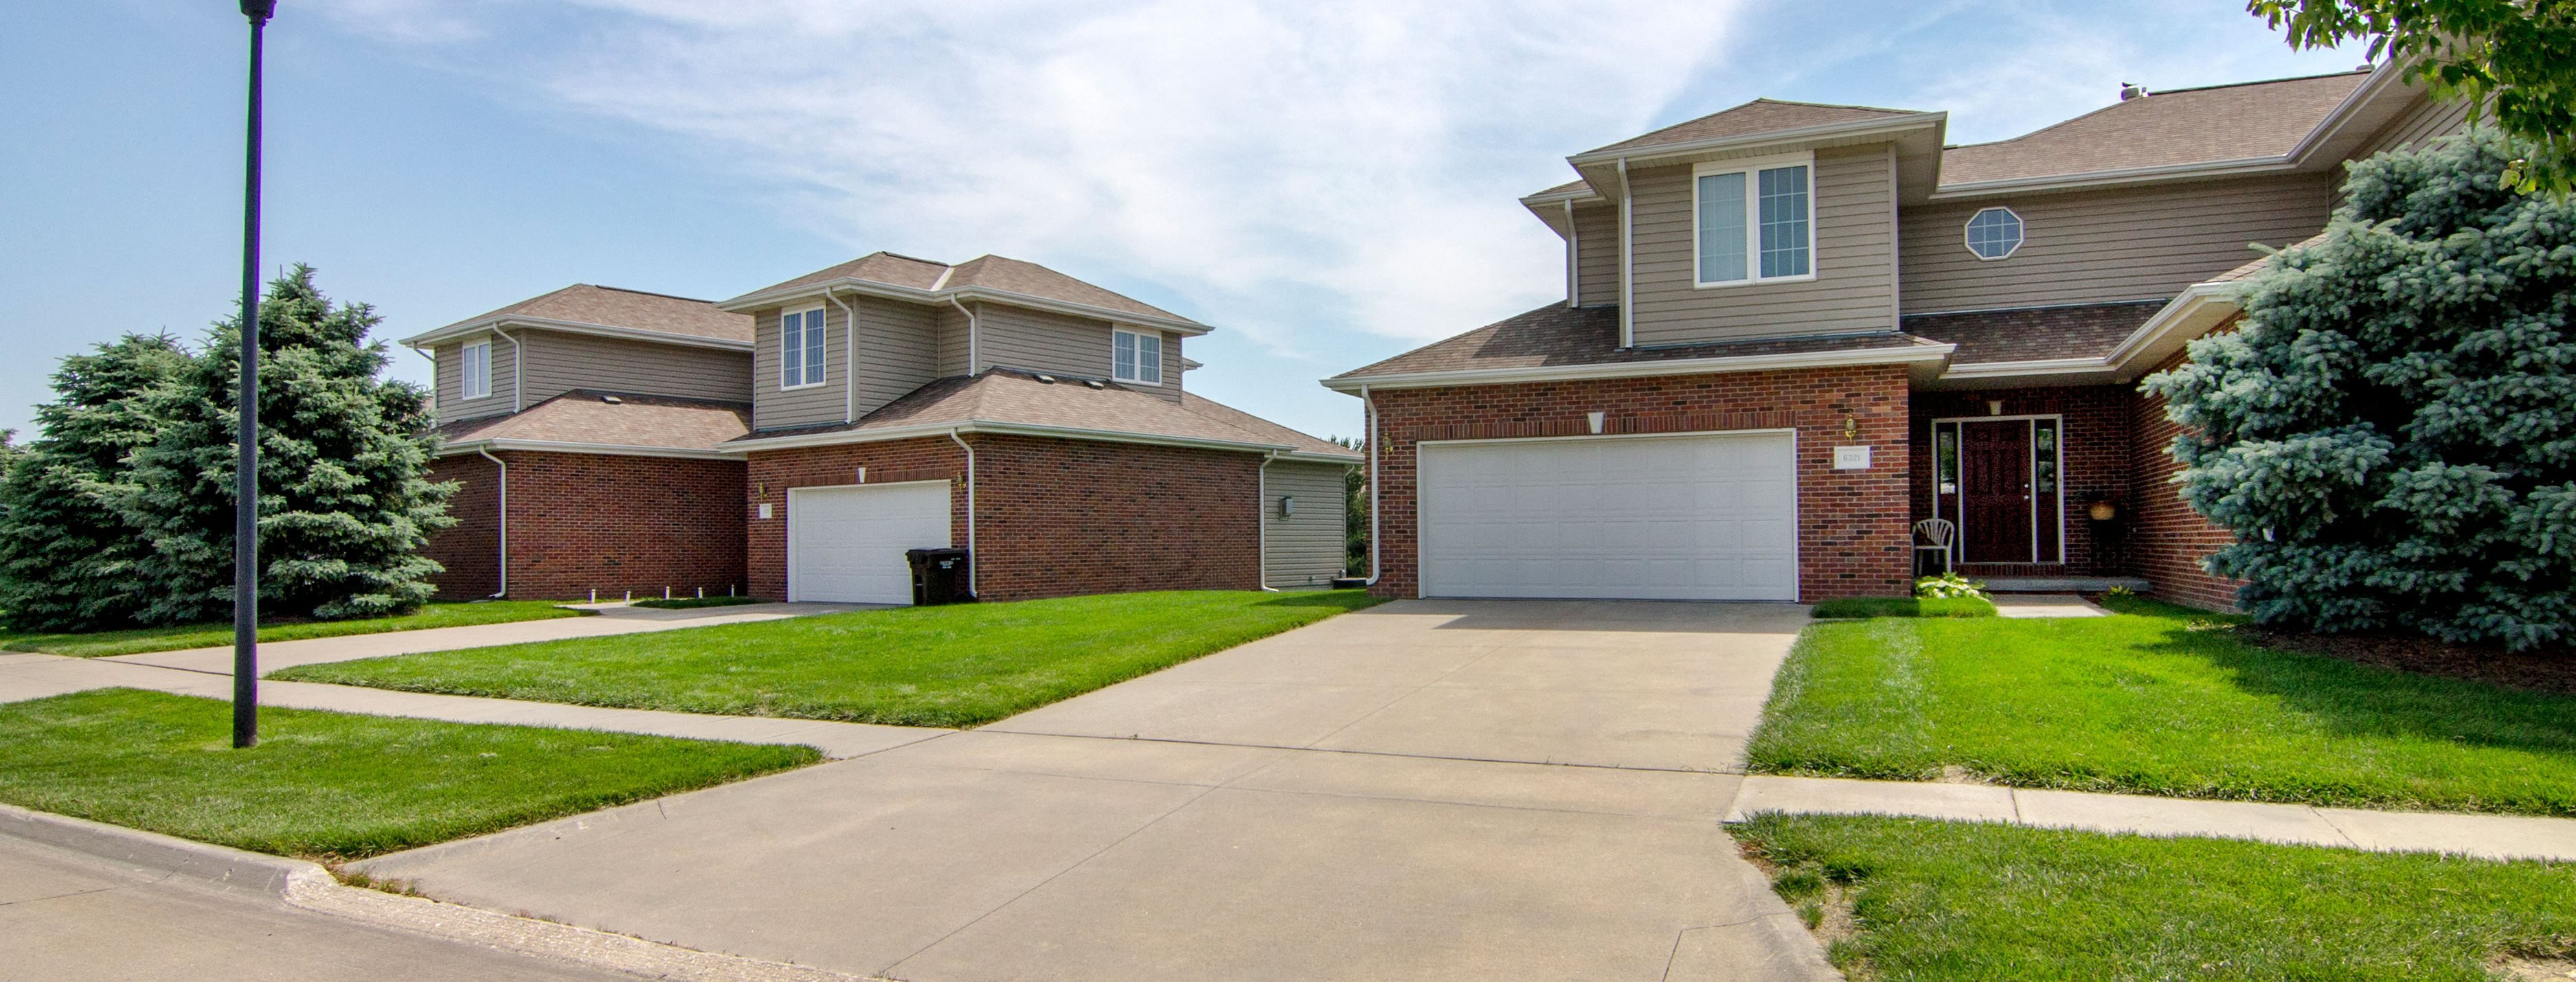 Outside view of Cascade Pines Duplex Homes in Lincoln NE